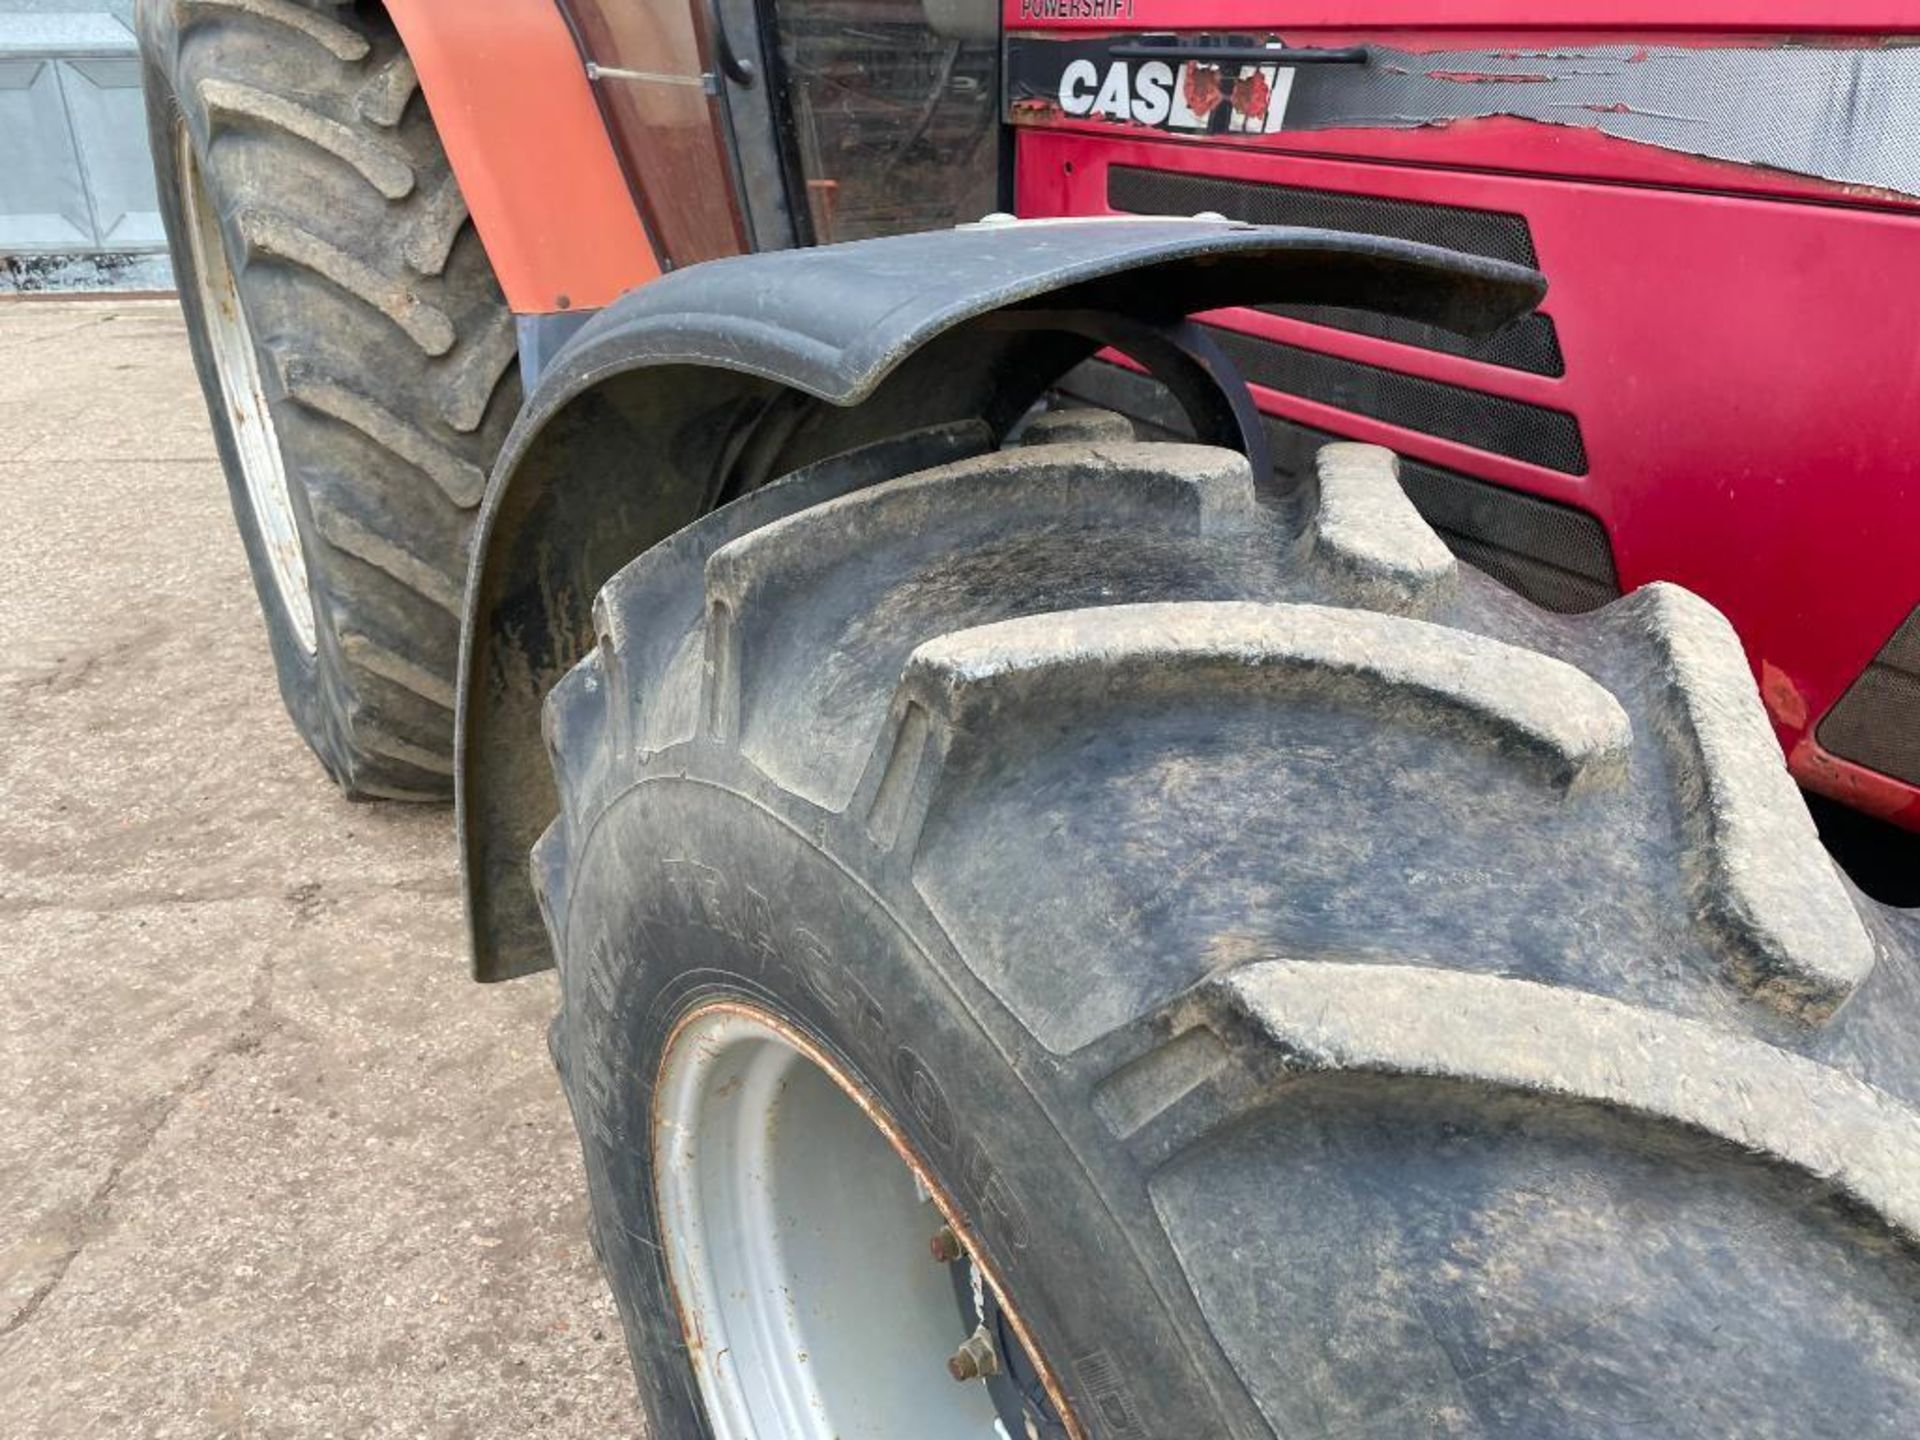 1997 Case IH 5150 Maxxum Plus Powershift 4wd tractor with 2 spools, PUH and front wafer weights on 1 - Image 3 of 13